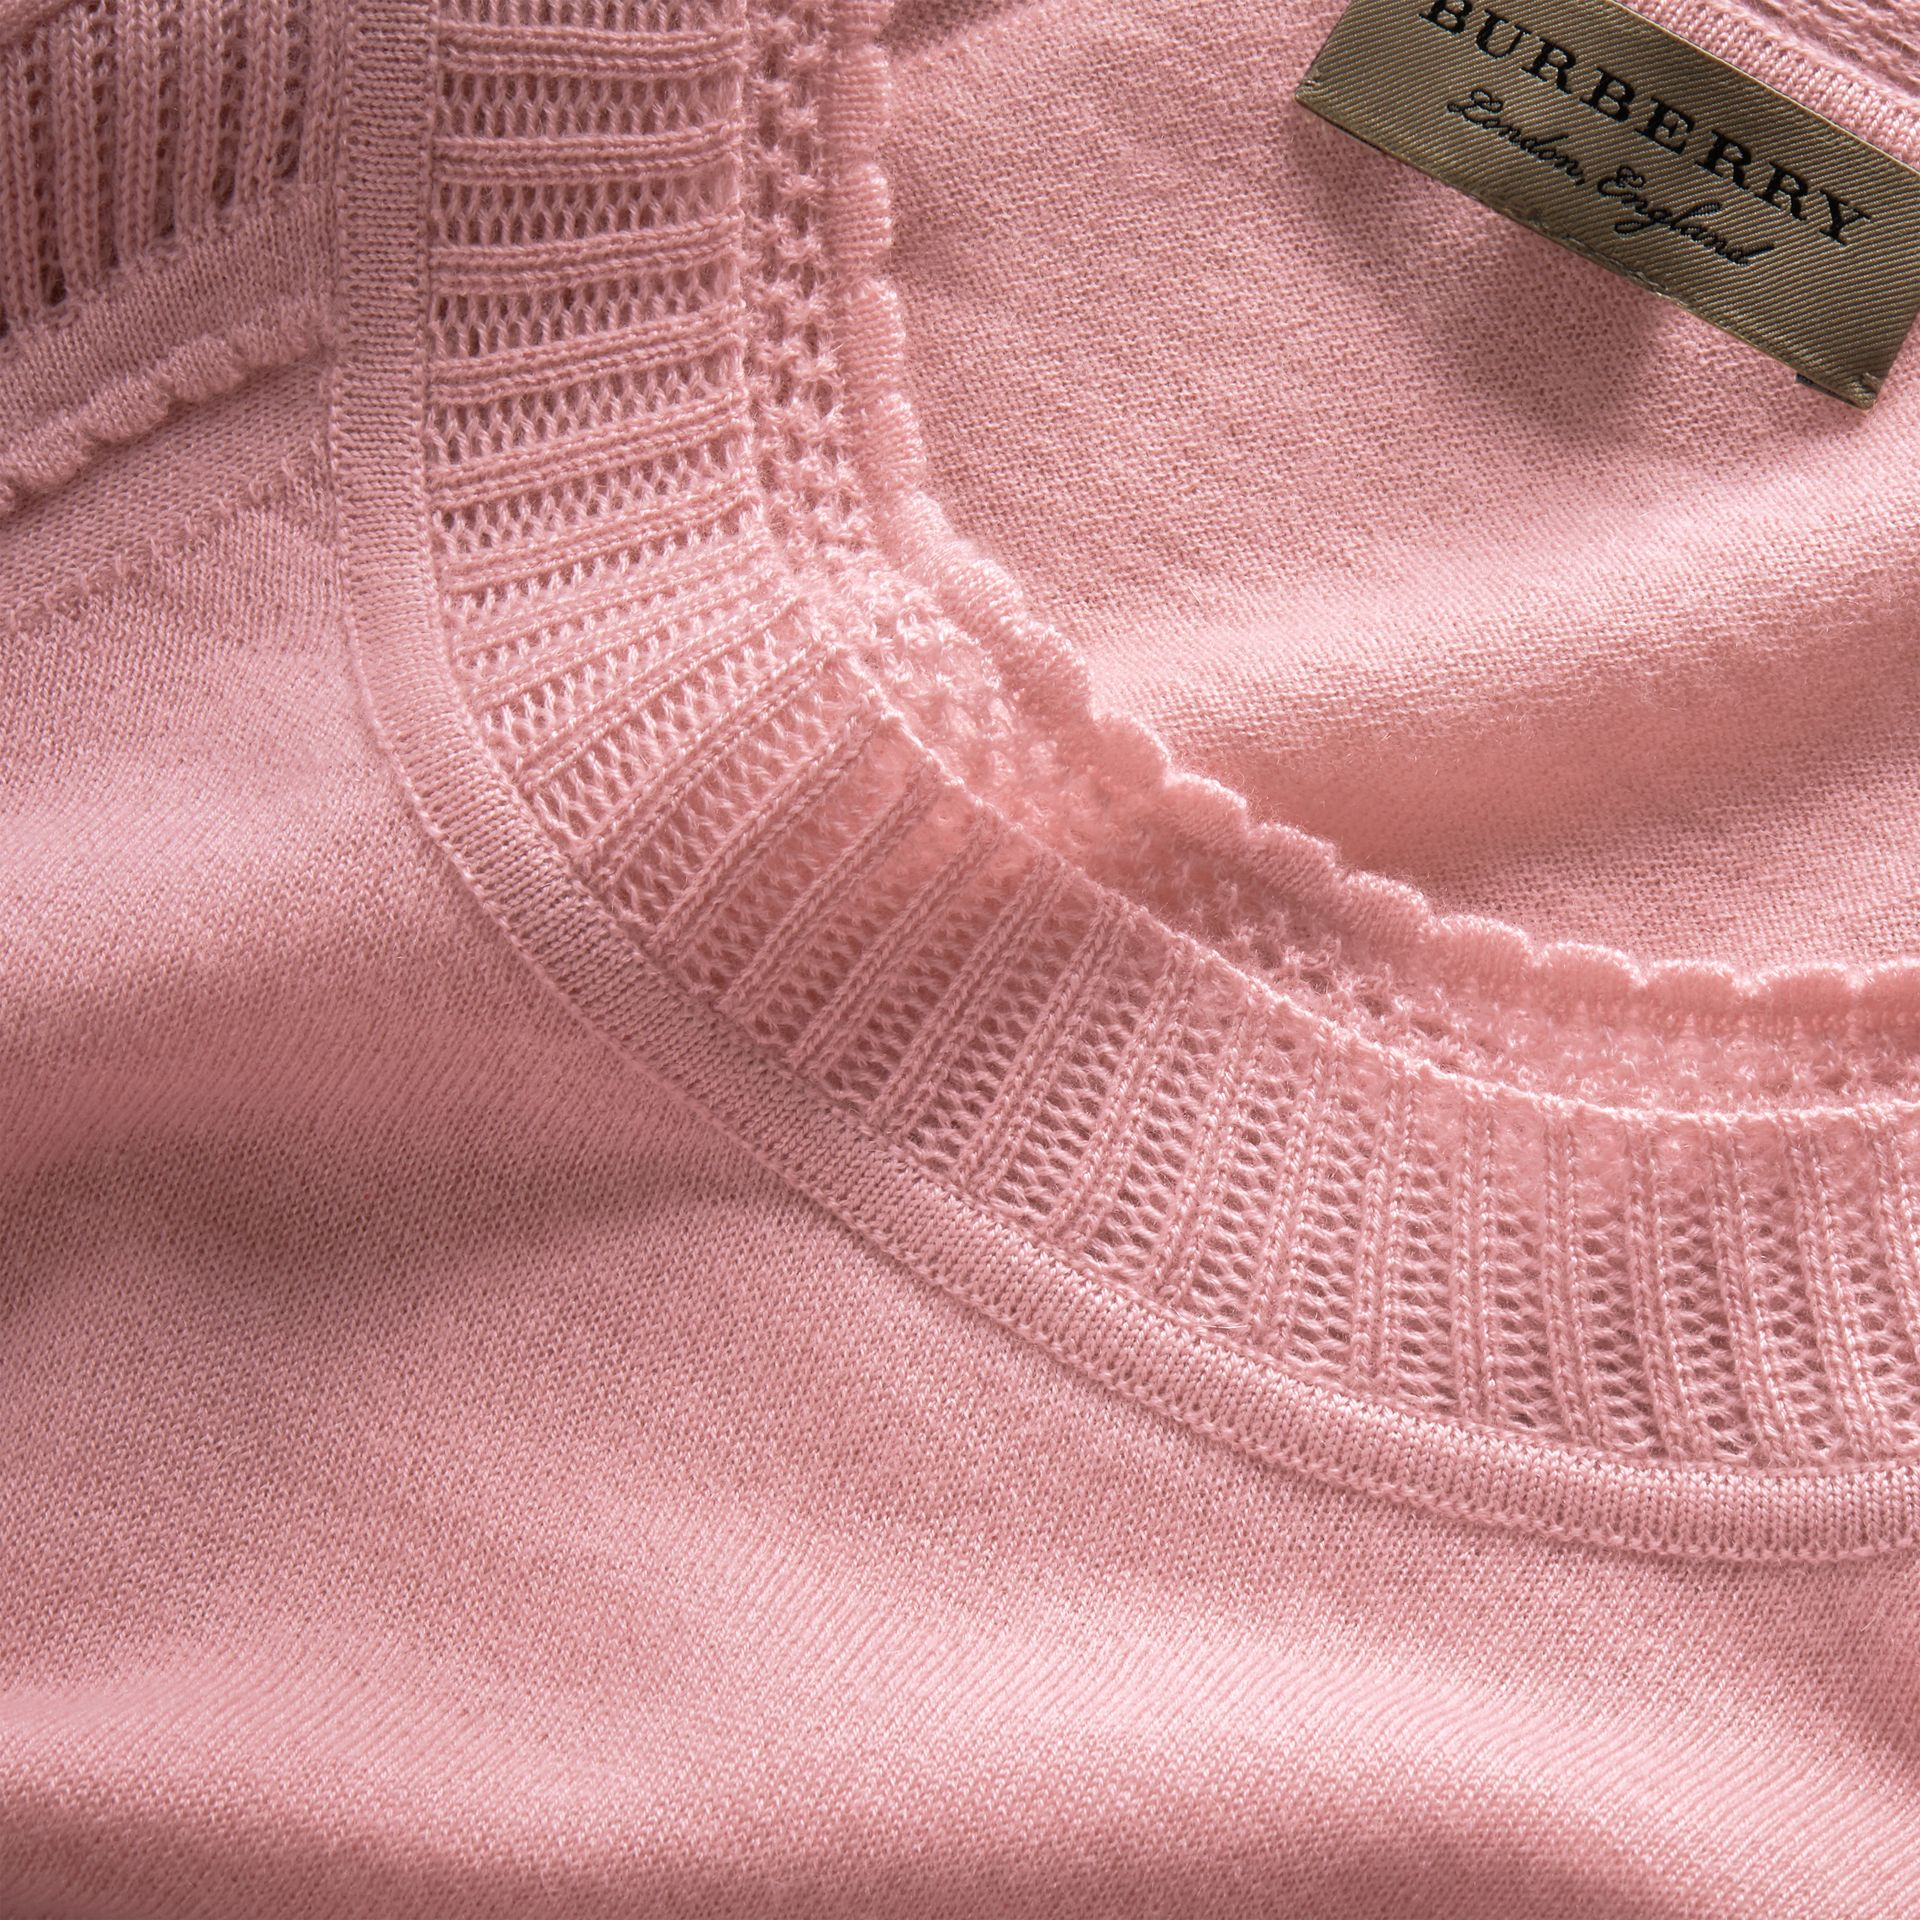 Open-knit Detail Cashmere Crew Neck Sweater in Apricot Pink - Women | Burberry Canada - gallery image 2